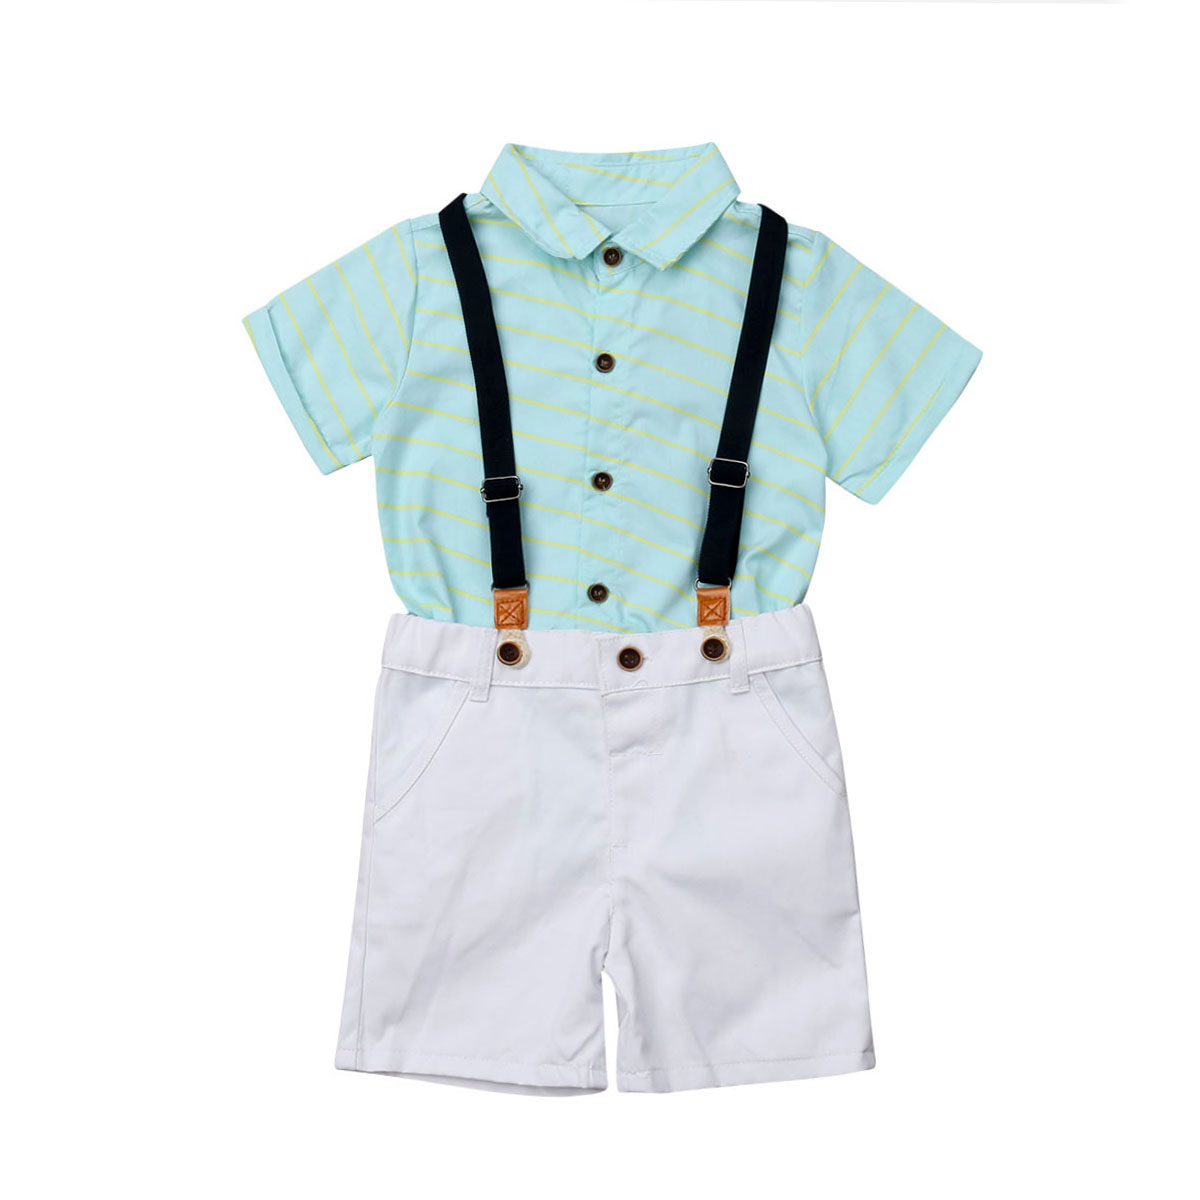 2pcs Toddler Kids Baby Boys Clothes Sets Gentleman Shirt Short Sleeve Overalls Shorts Cotton Outfits Set Boy 3-8T cute toddler kid baby boys clothes sets t shirt top short sleeve cotton pants outfits clothing set boy